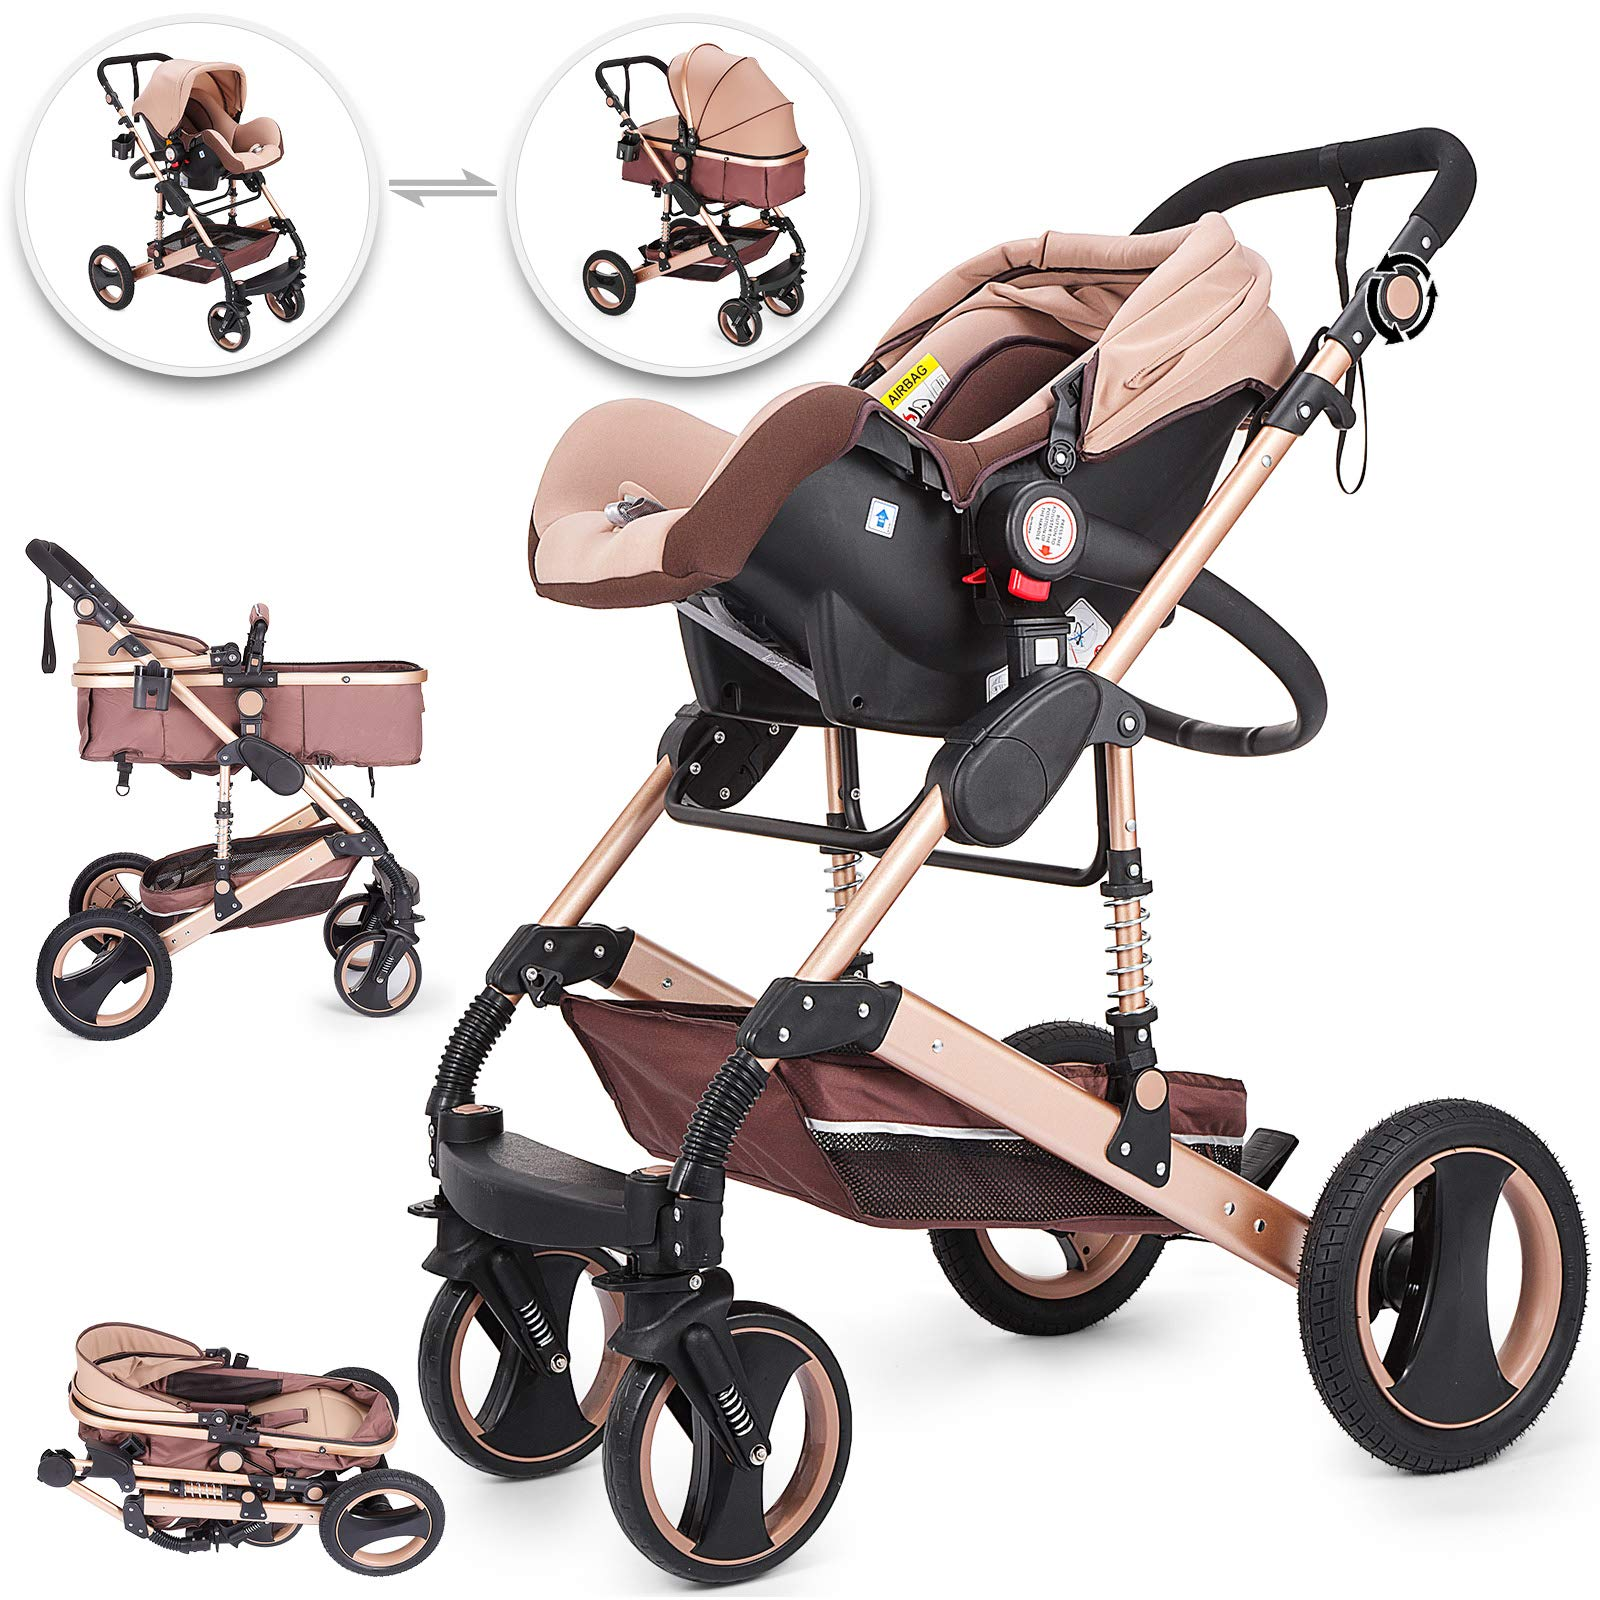 Happybuy 3 in 1 Stroller Khaki Foldable Luxury Baby Stroller Anti-Shock Springs High View Pram Baby Stroller 3 in 1 with Baby Basket(No Base) by Happybuy